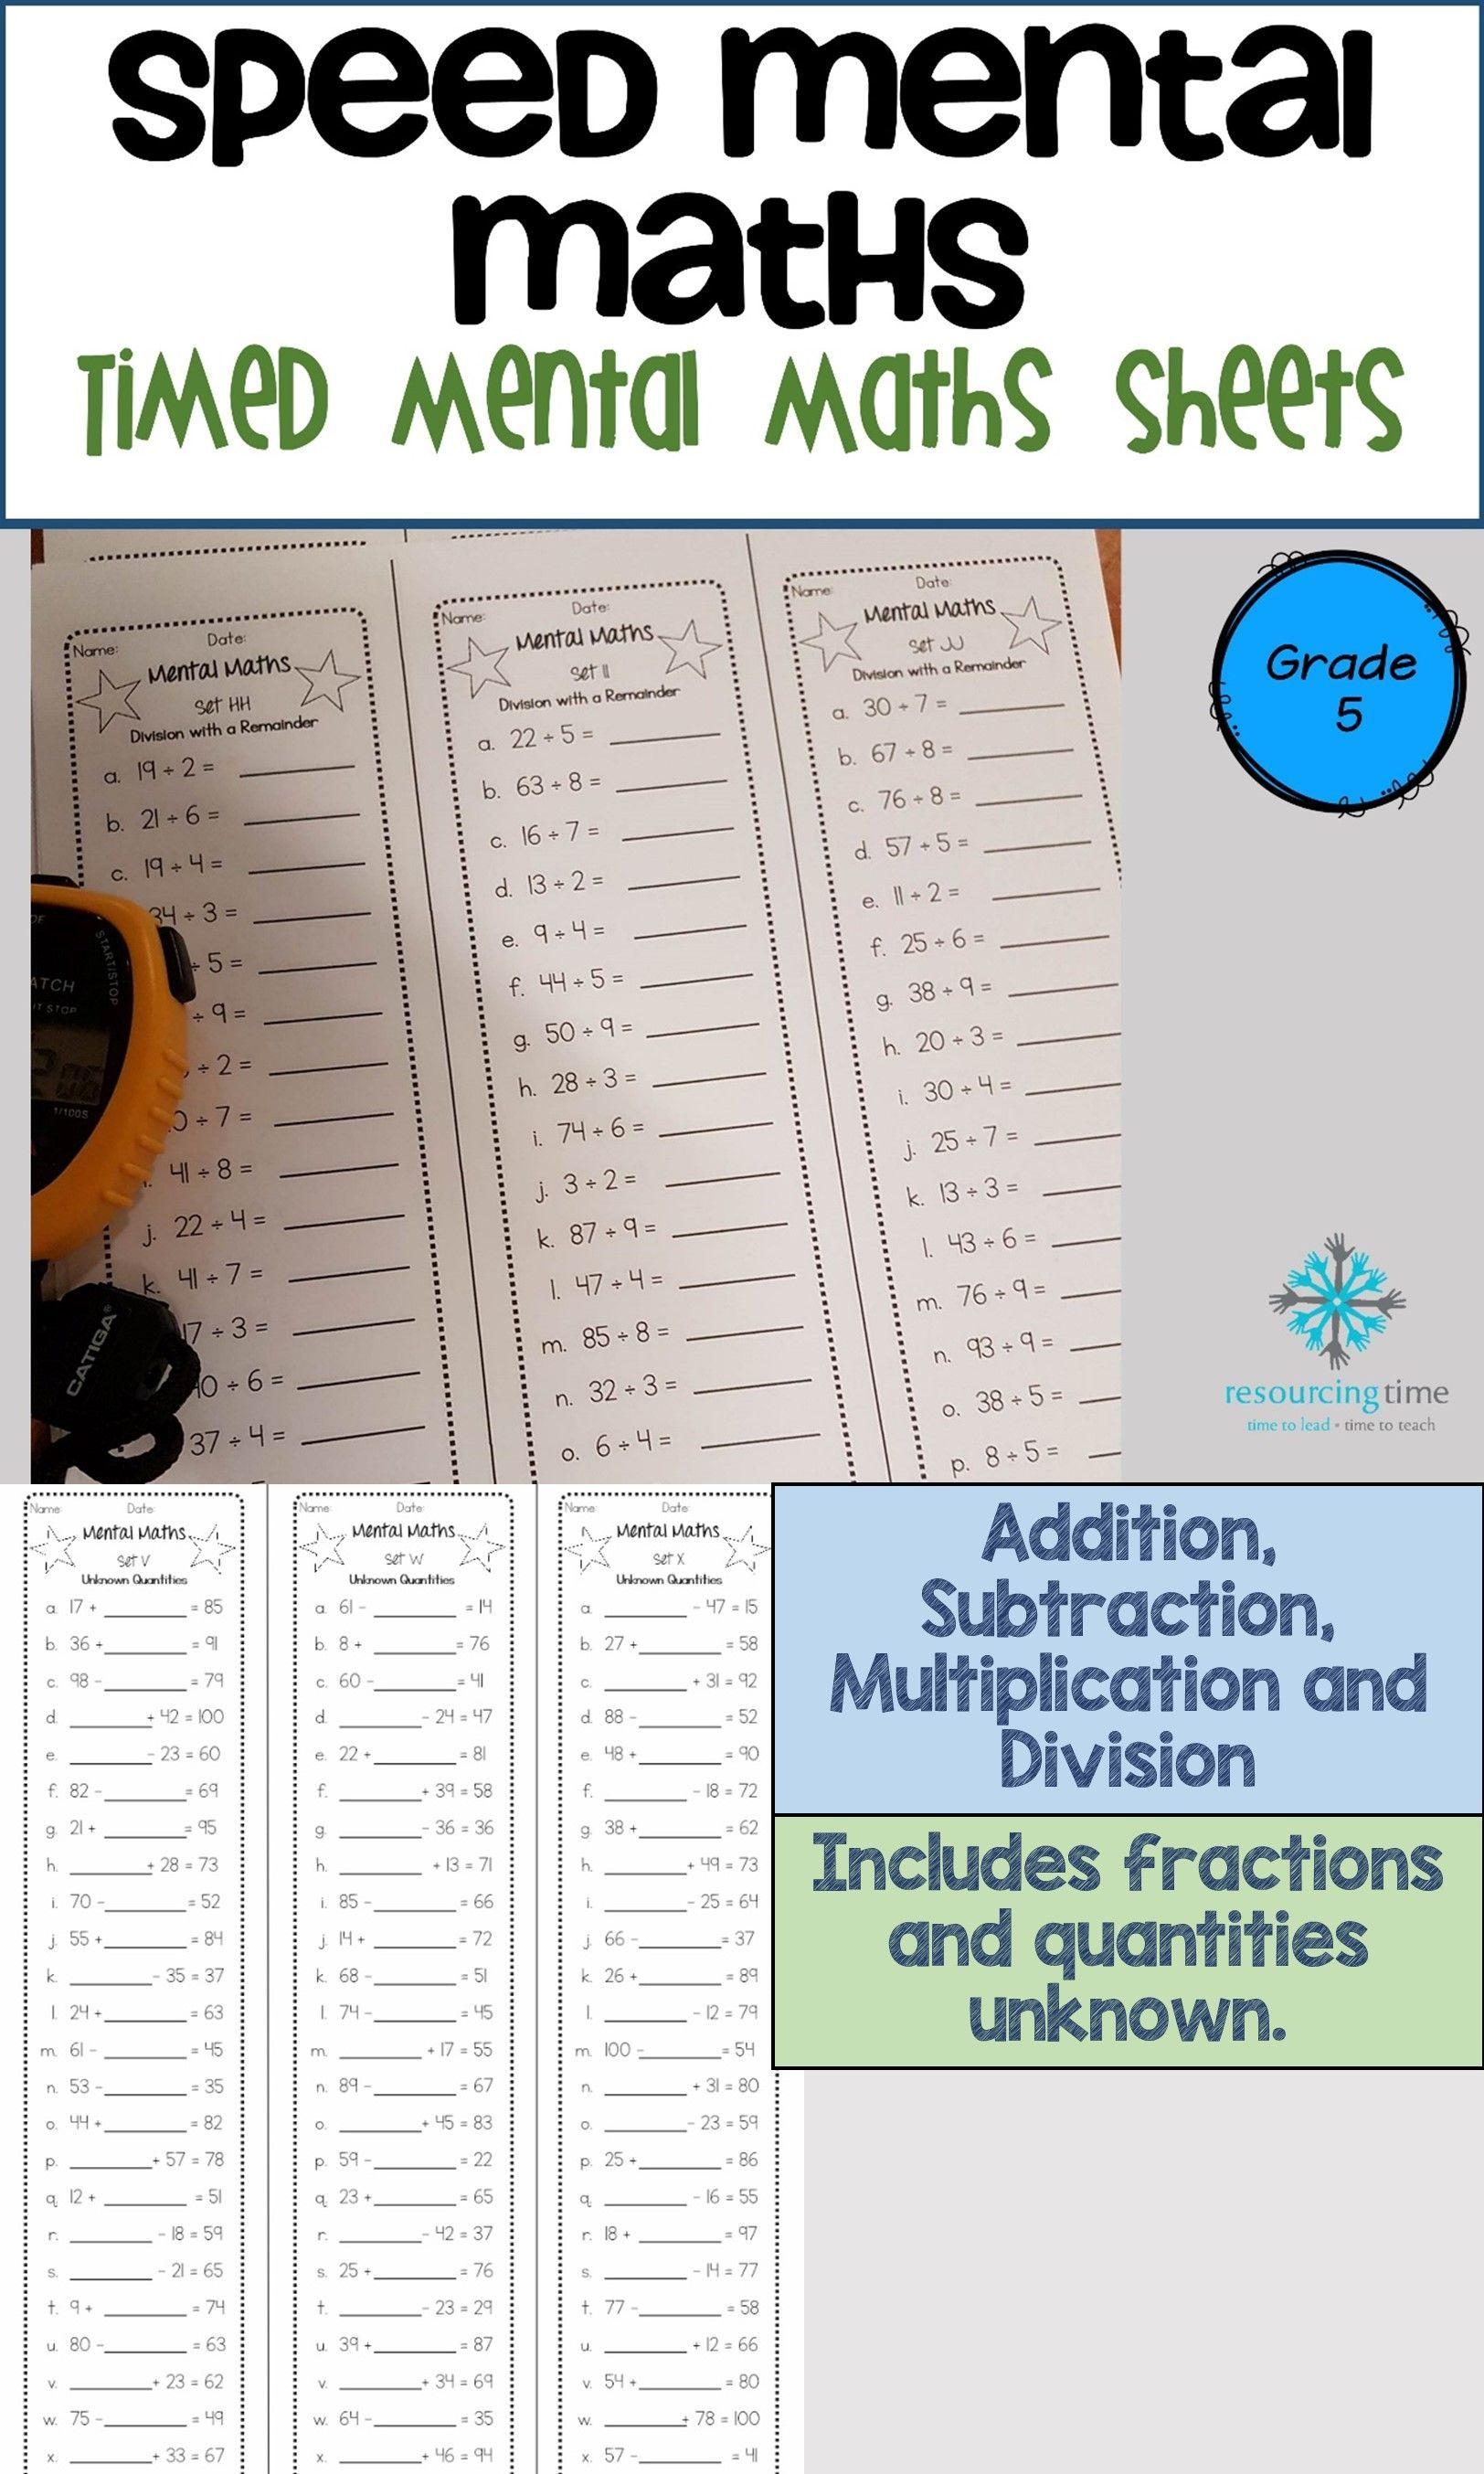 45 Mental Maths Sheets For Your Students To Increase Their Fluency And Accuracy With Addition Subtraction Multiplica Mental Math Math Mental Math Strategies [ 2707 x 1624 Pixel ]